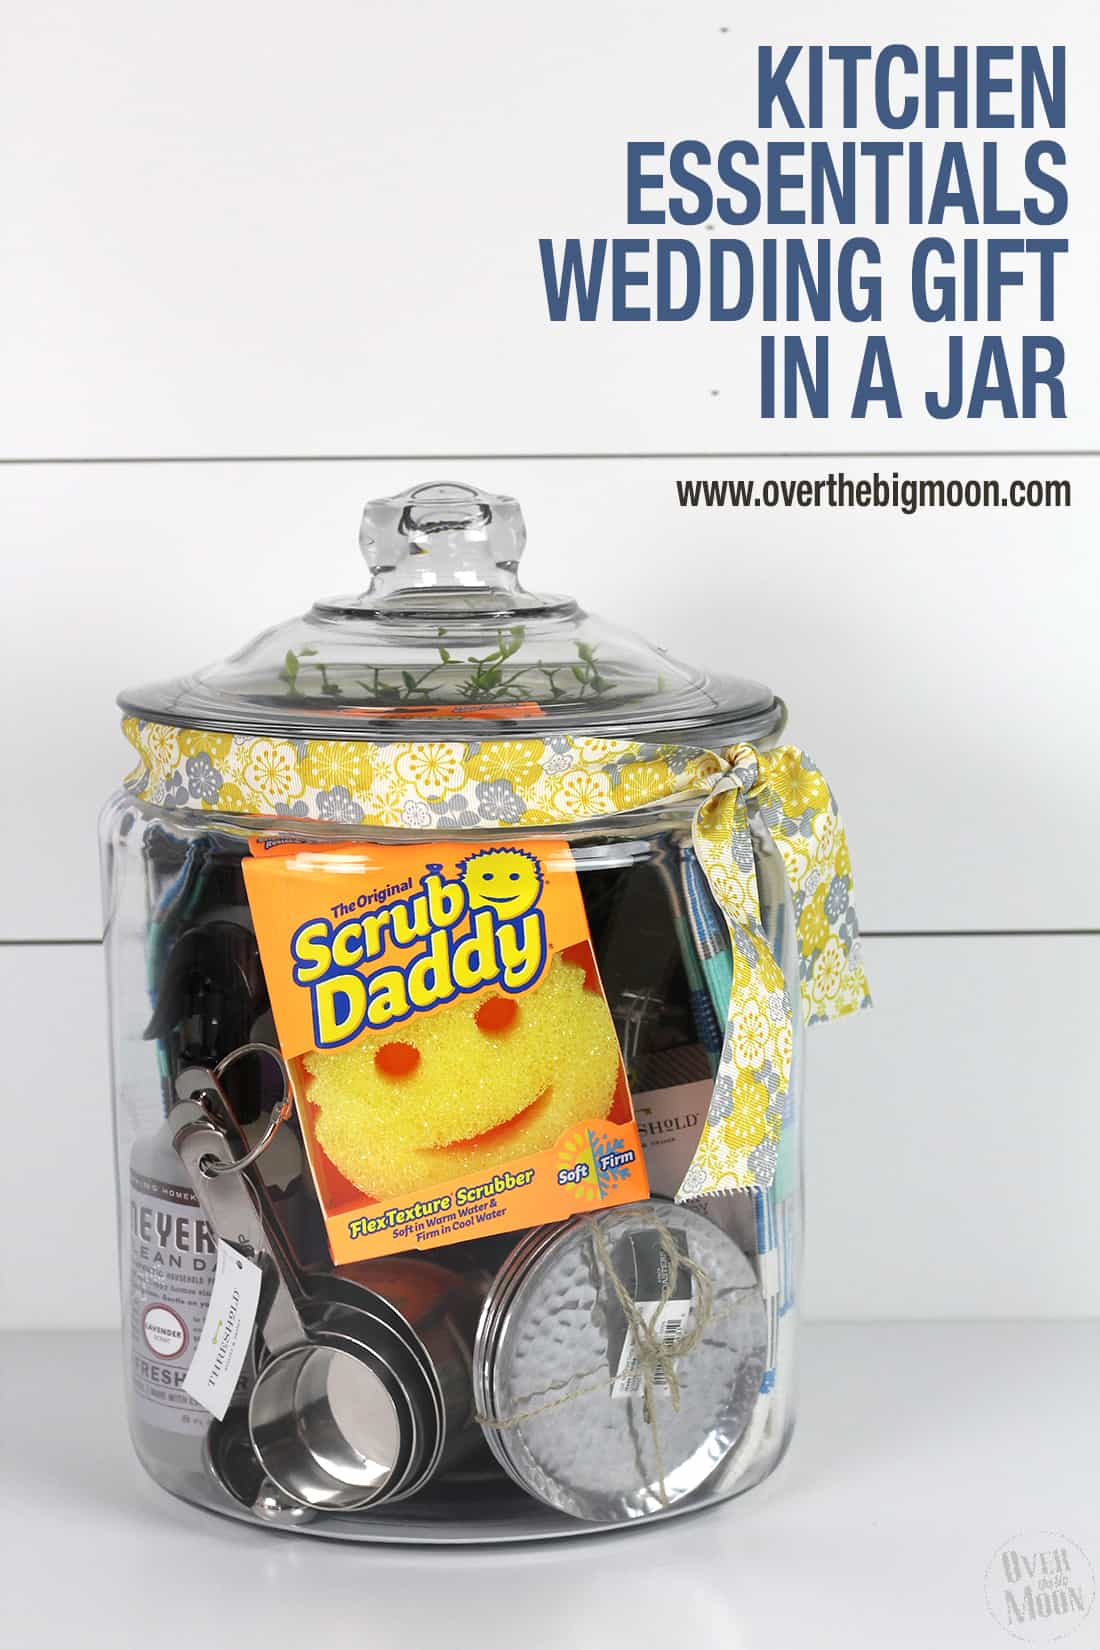 Wedding Gifts For Kitchen : Over The Big Moon Kitchen Essentials Wedding Gift in a Jar - Over The ...